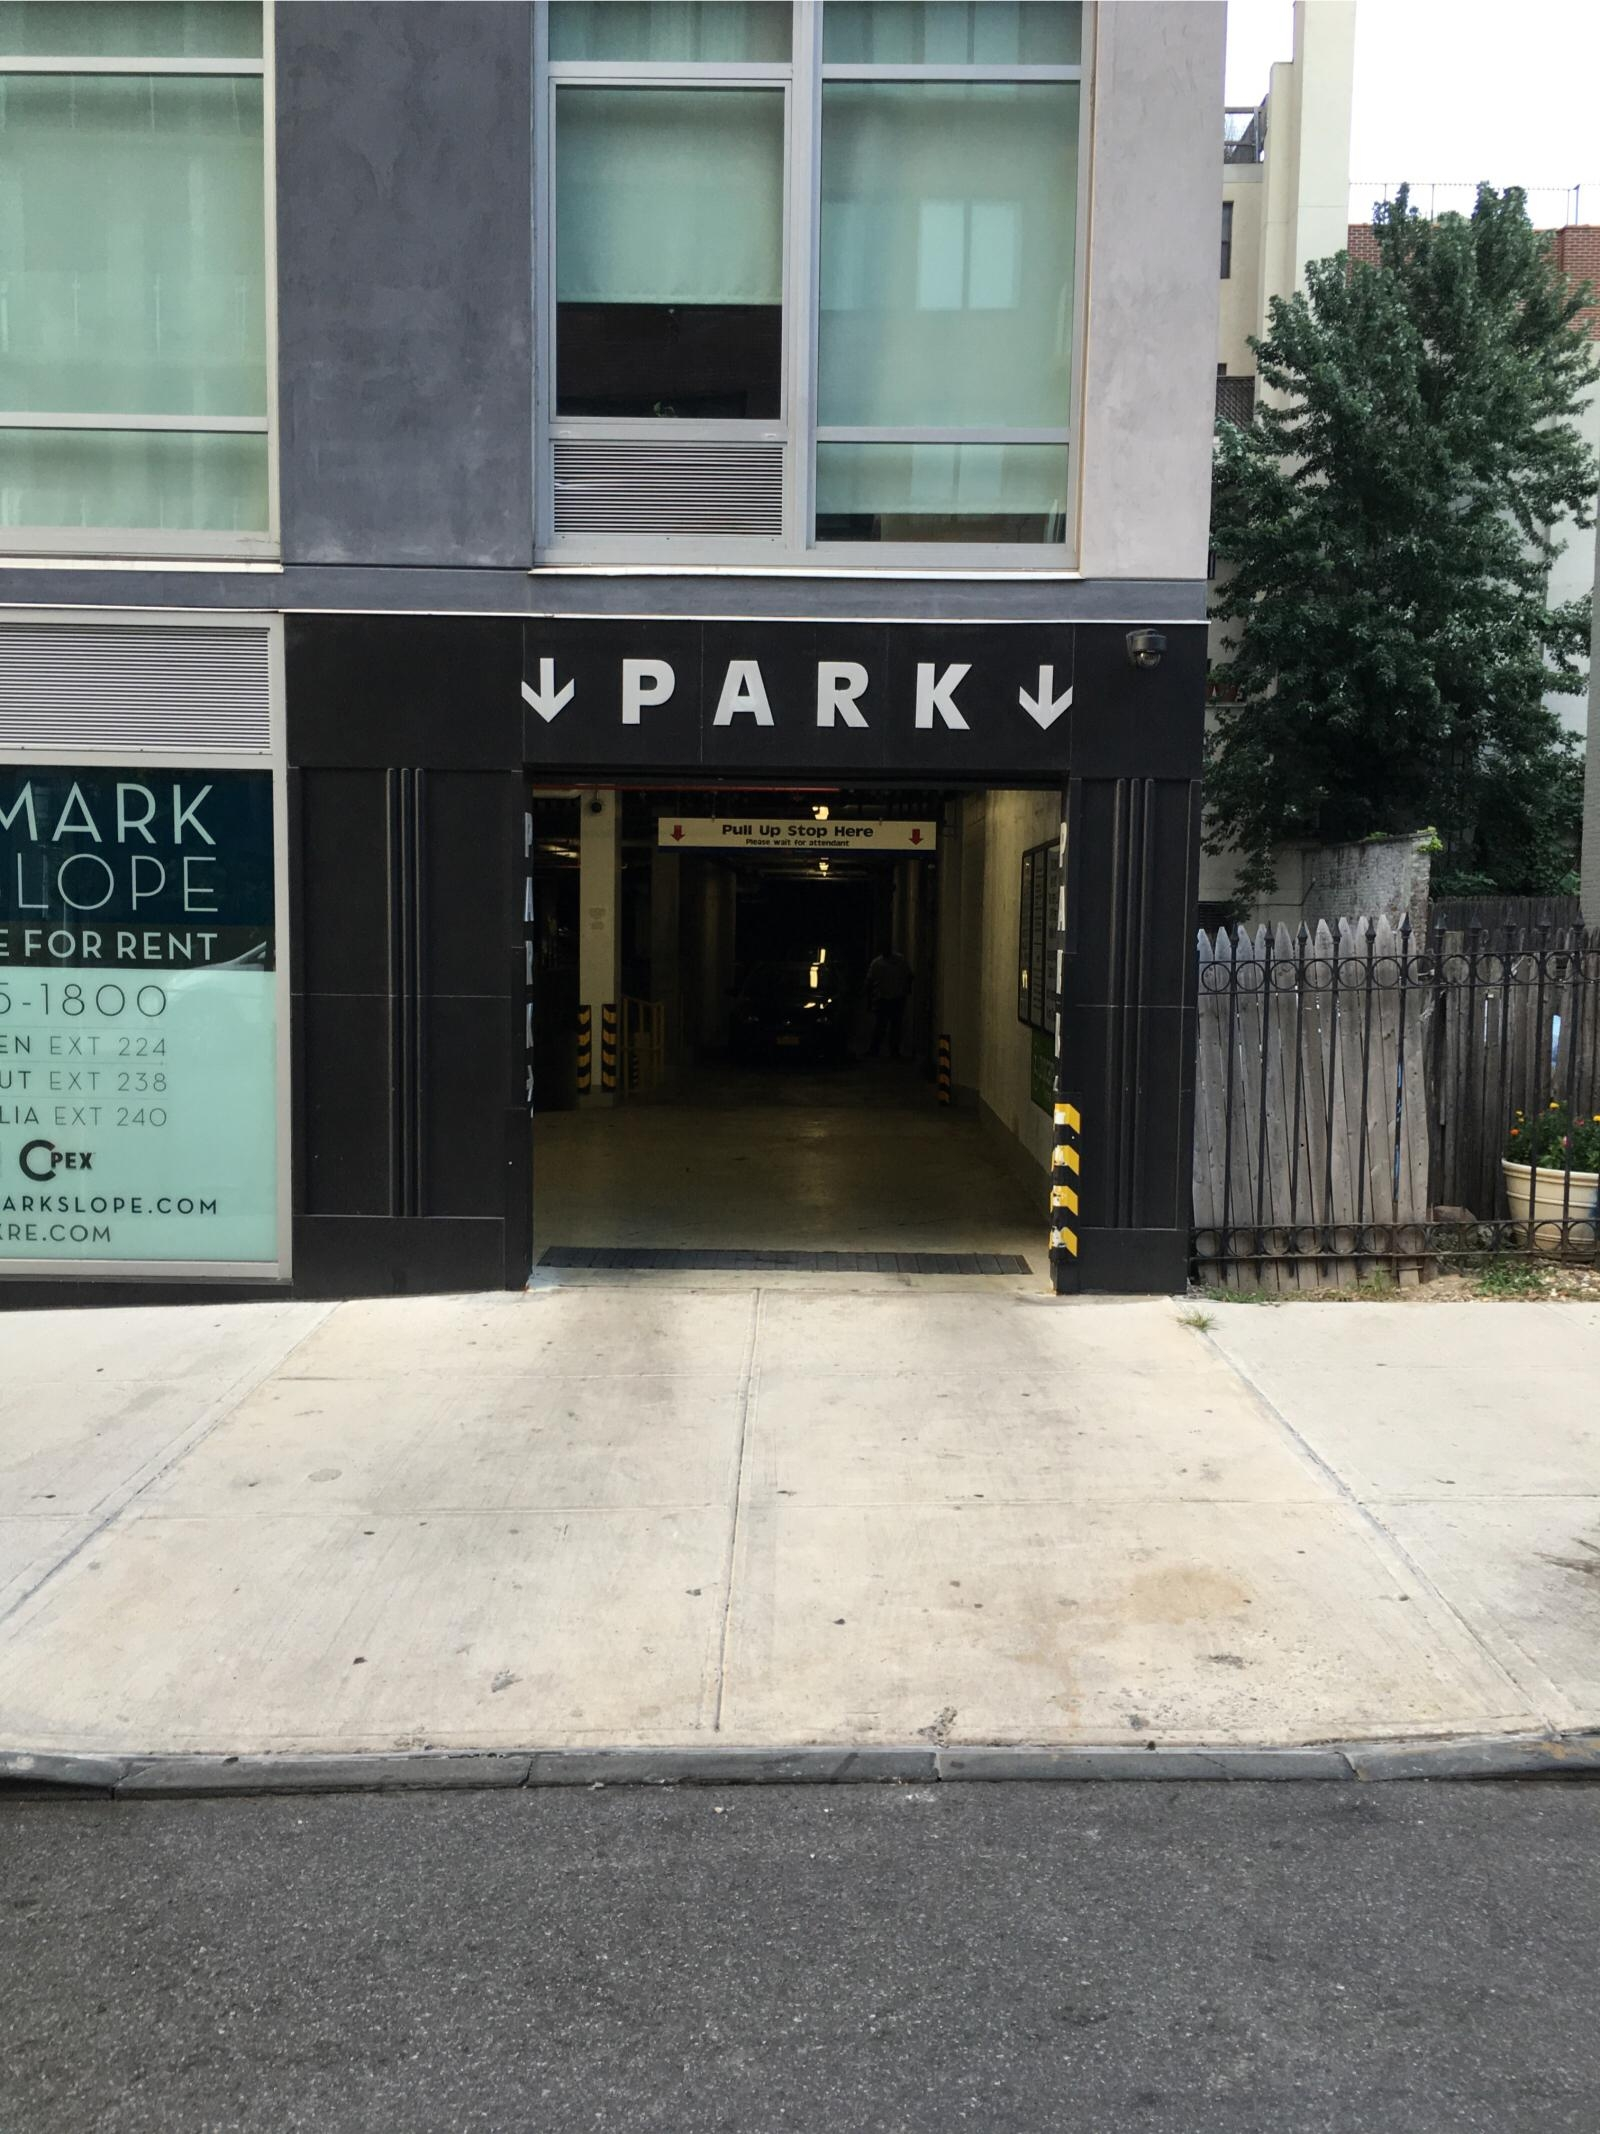 267 6th St Garage Parking In New York Parkme Make Your Own Beautiful  HD Wallpapers, Images Over 1000+ [ralydesign.ml]